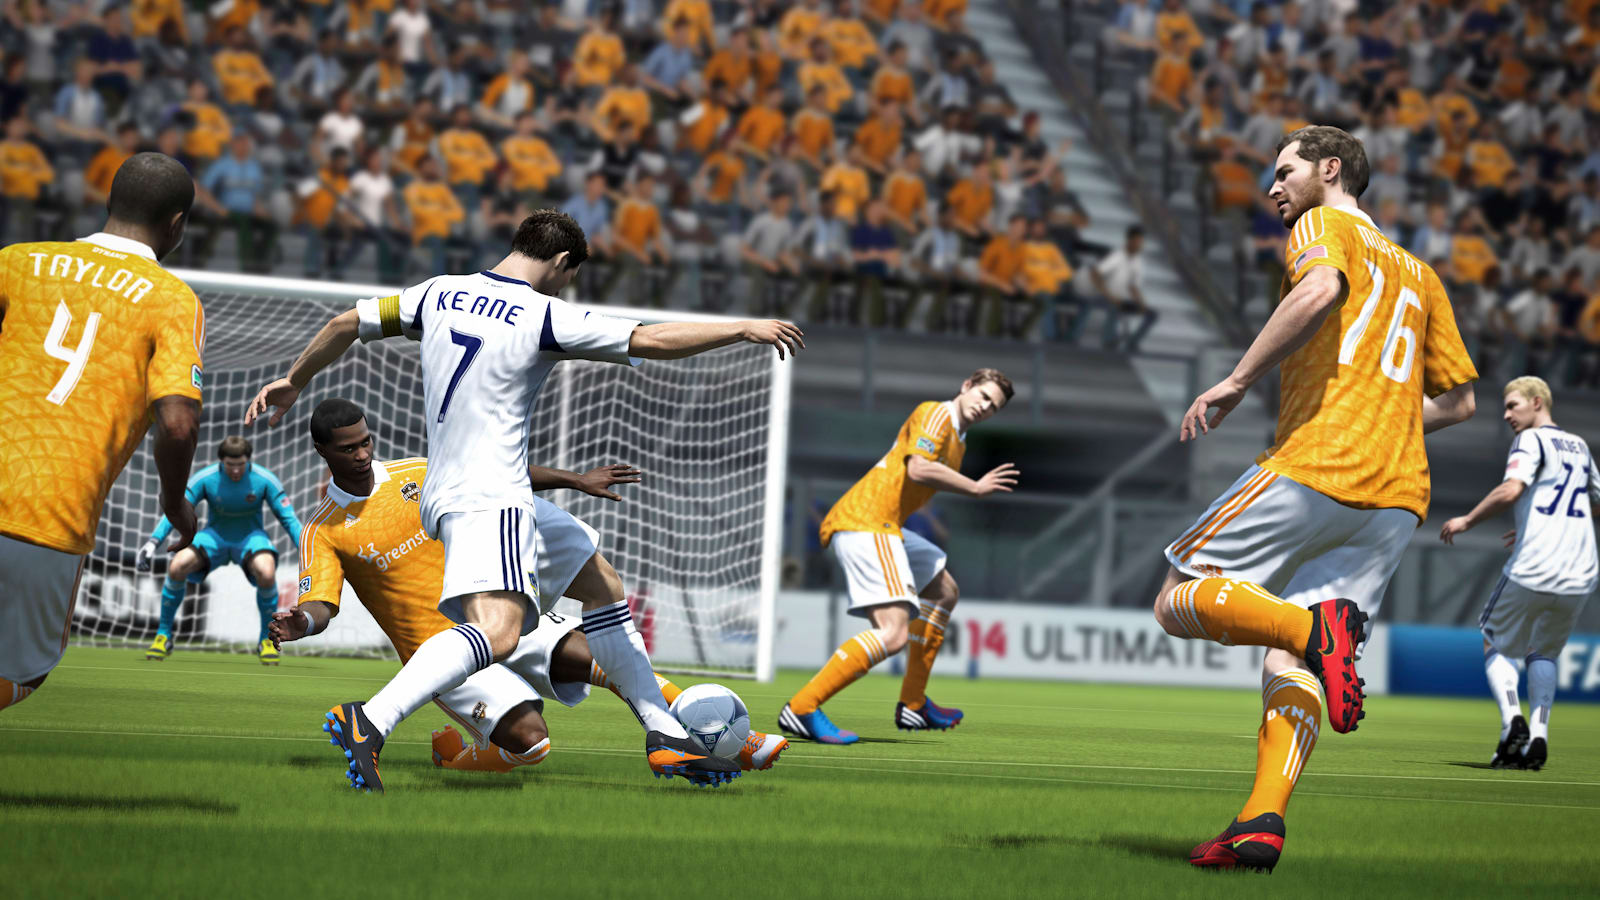 Fifa 14 download fifa 14 has introduced new elements that enhance gameplay and add more realism to the best soccer simulator for the pc view full description fifa 14 voltagebd Image collections